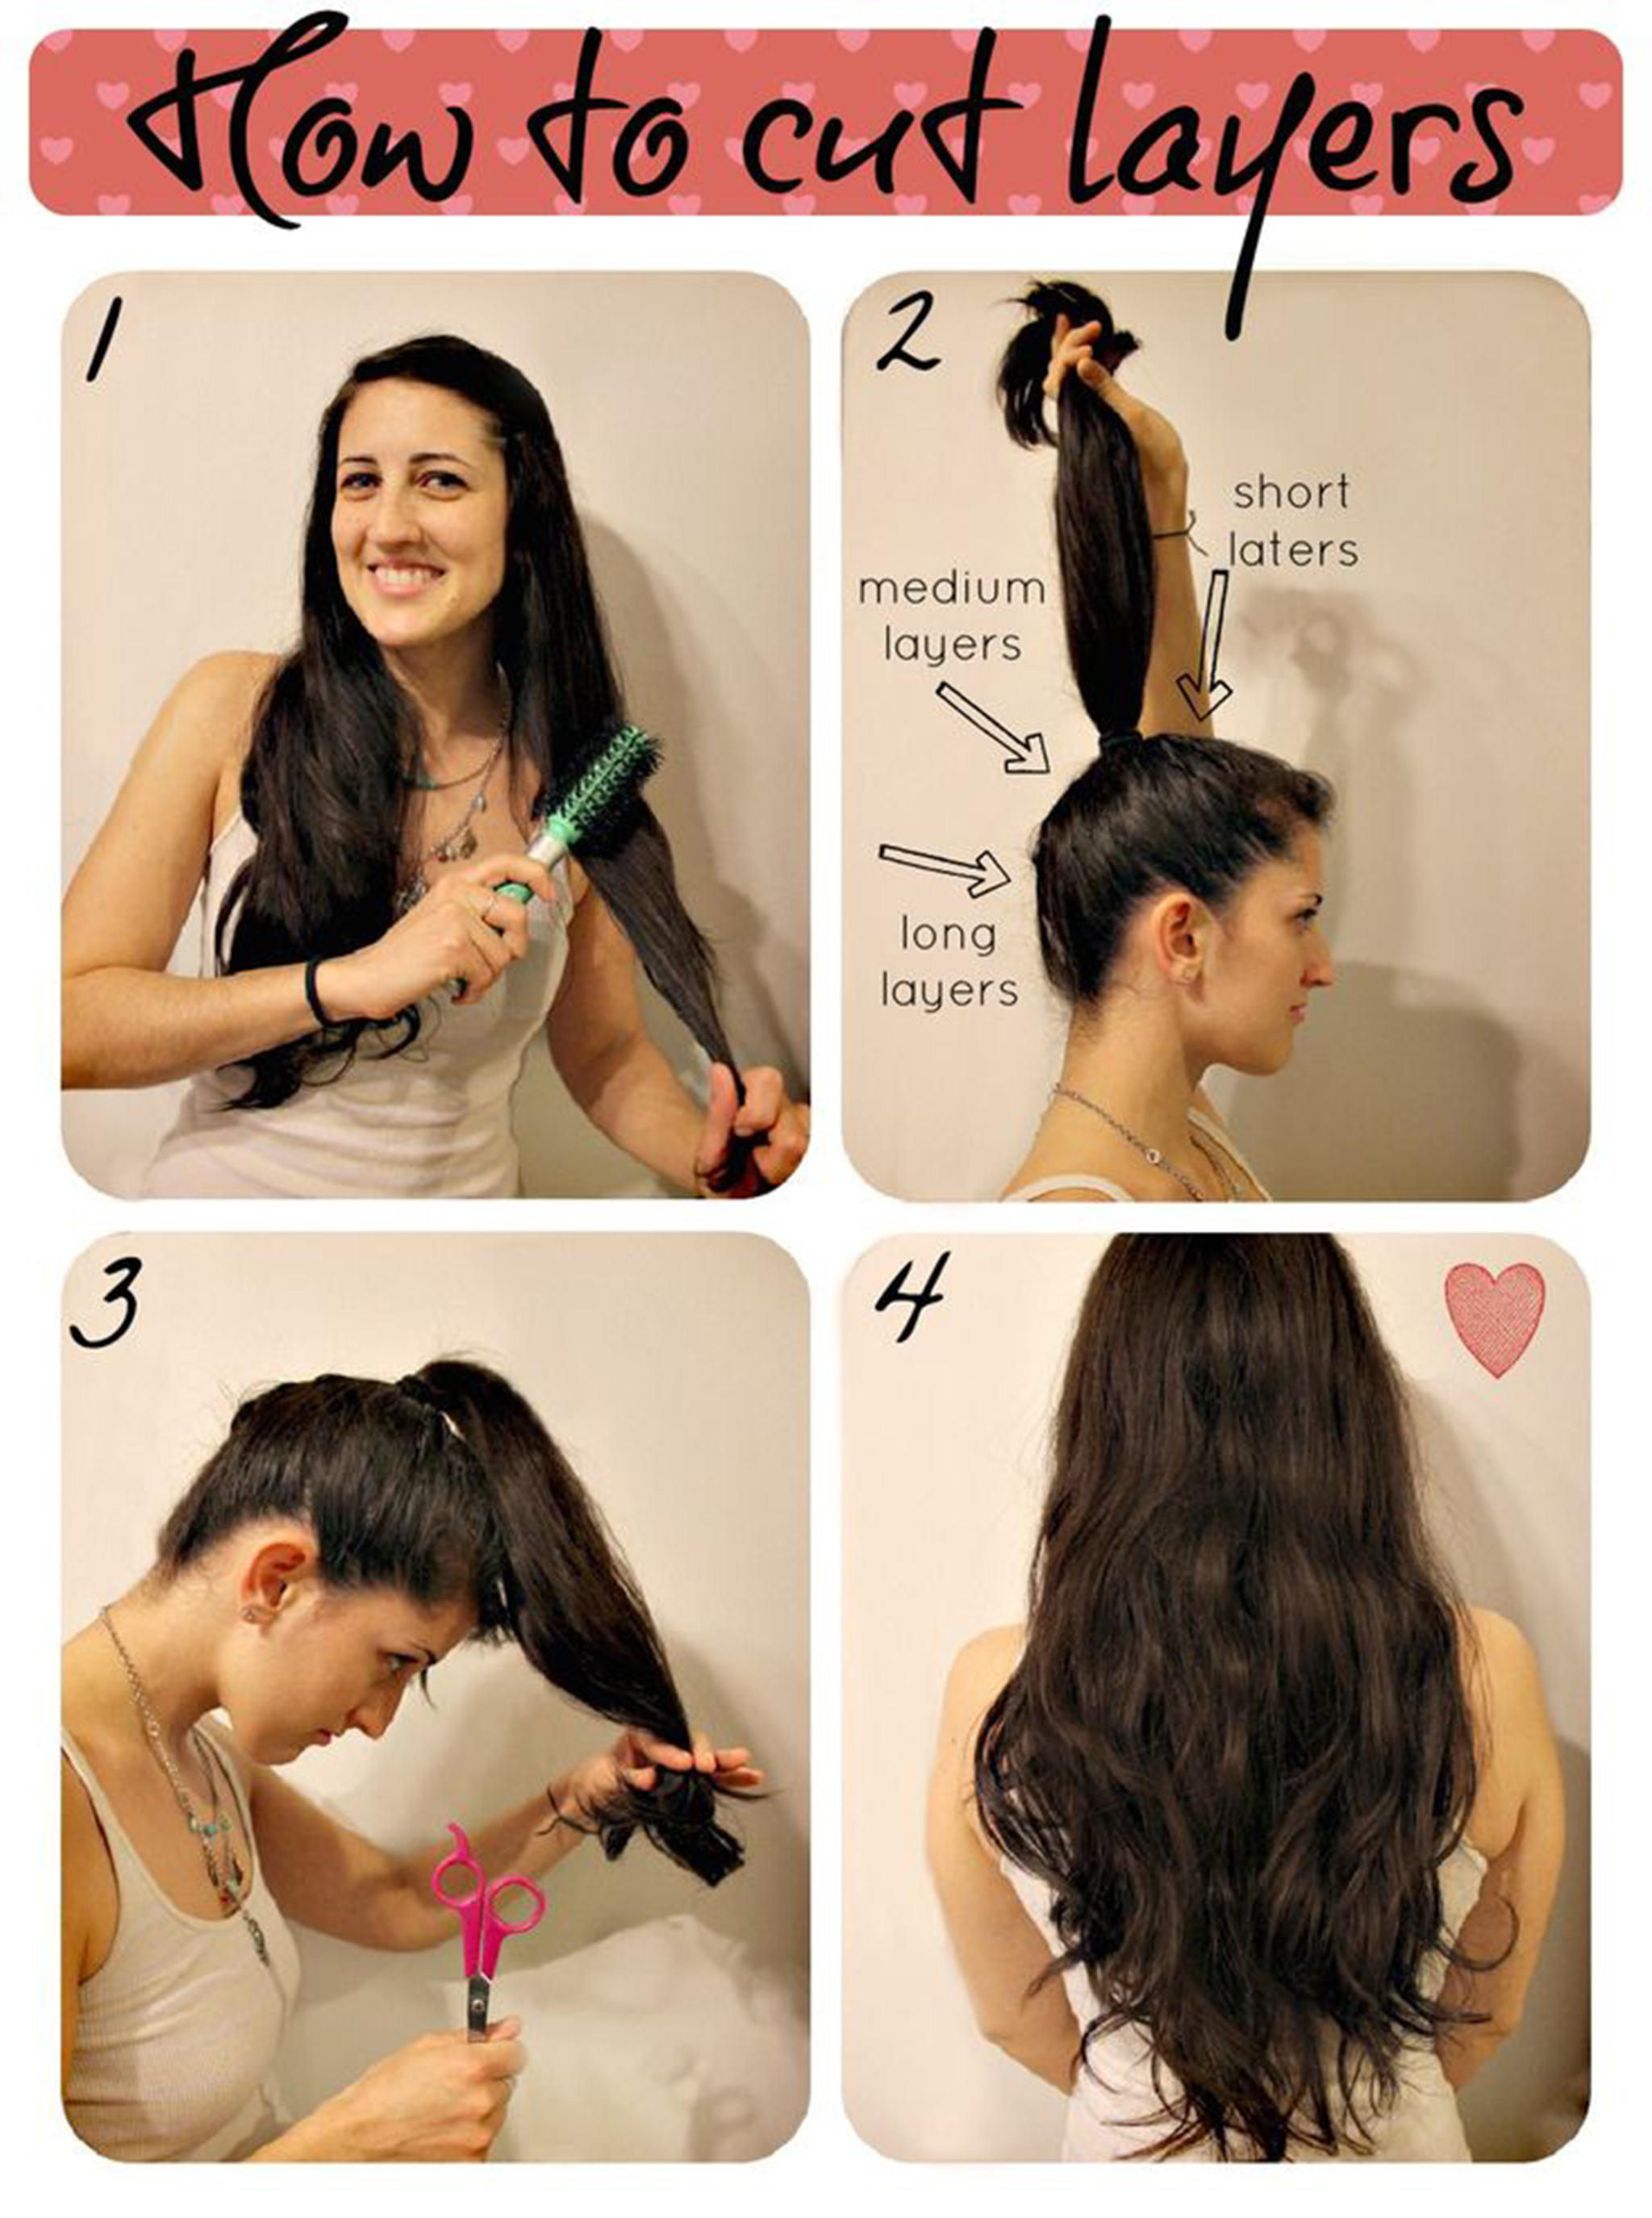 How to cut your hair: step by step instructions 70